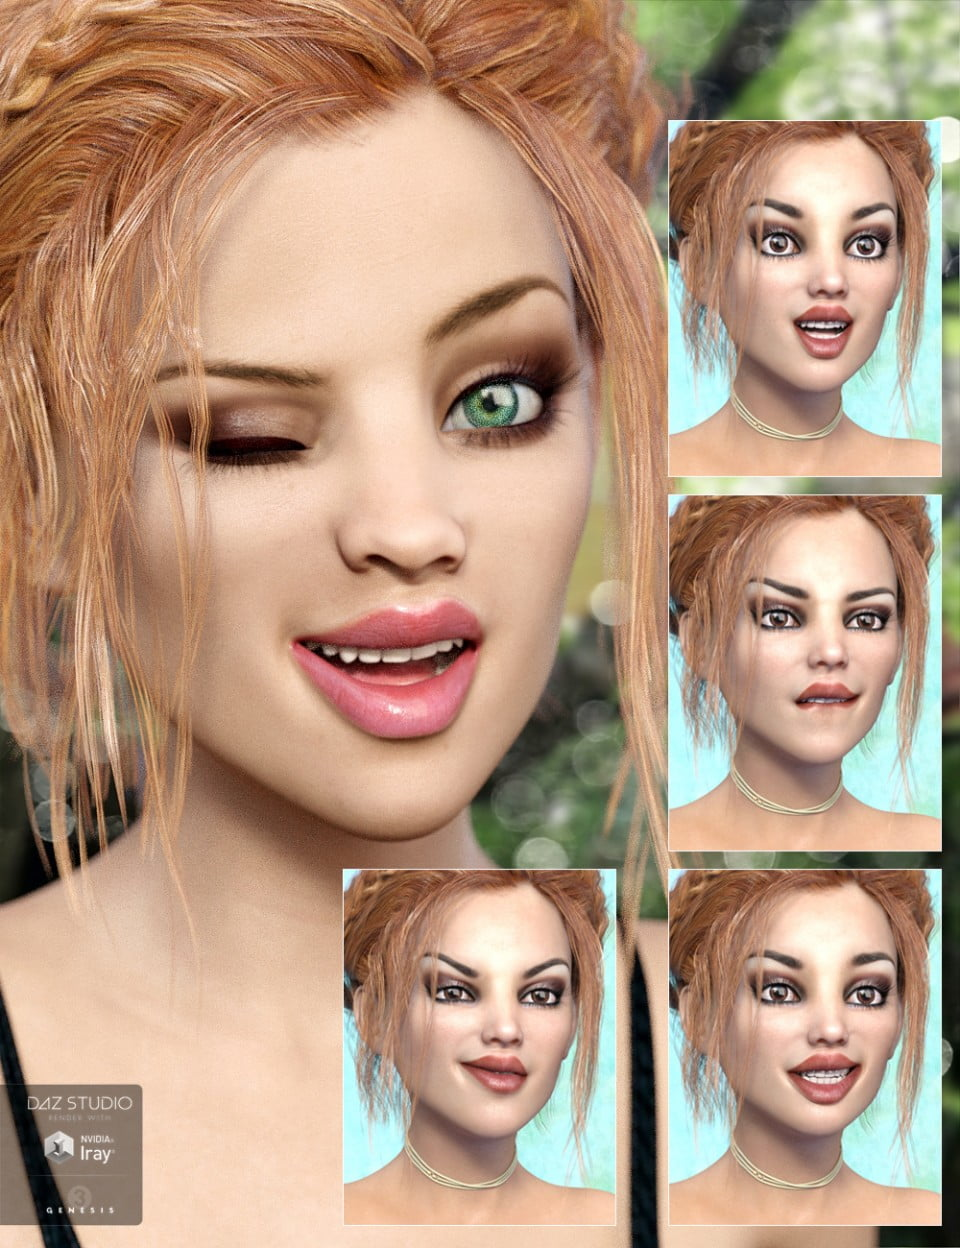 00-main-whispers-expressions-for-izabella-and-genesis-3-females-daz3d